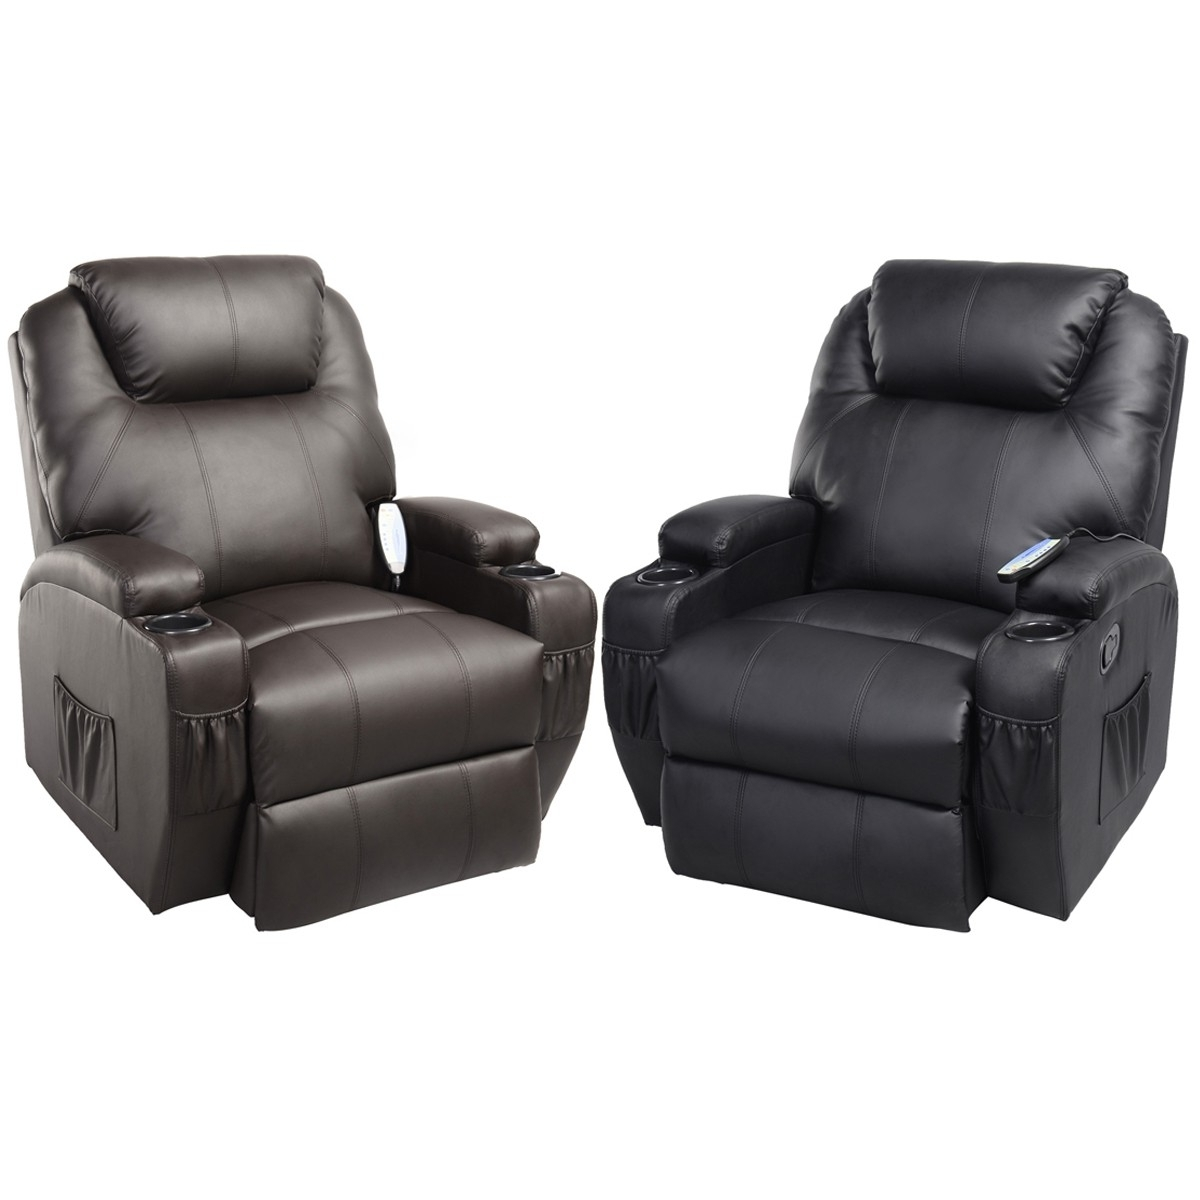 Newest Mage Recliner Sofa Chair Deluxe Ergonomic Lounge Heated W Within Sofas And Chairs